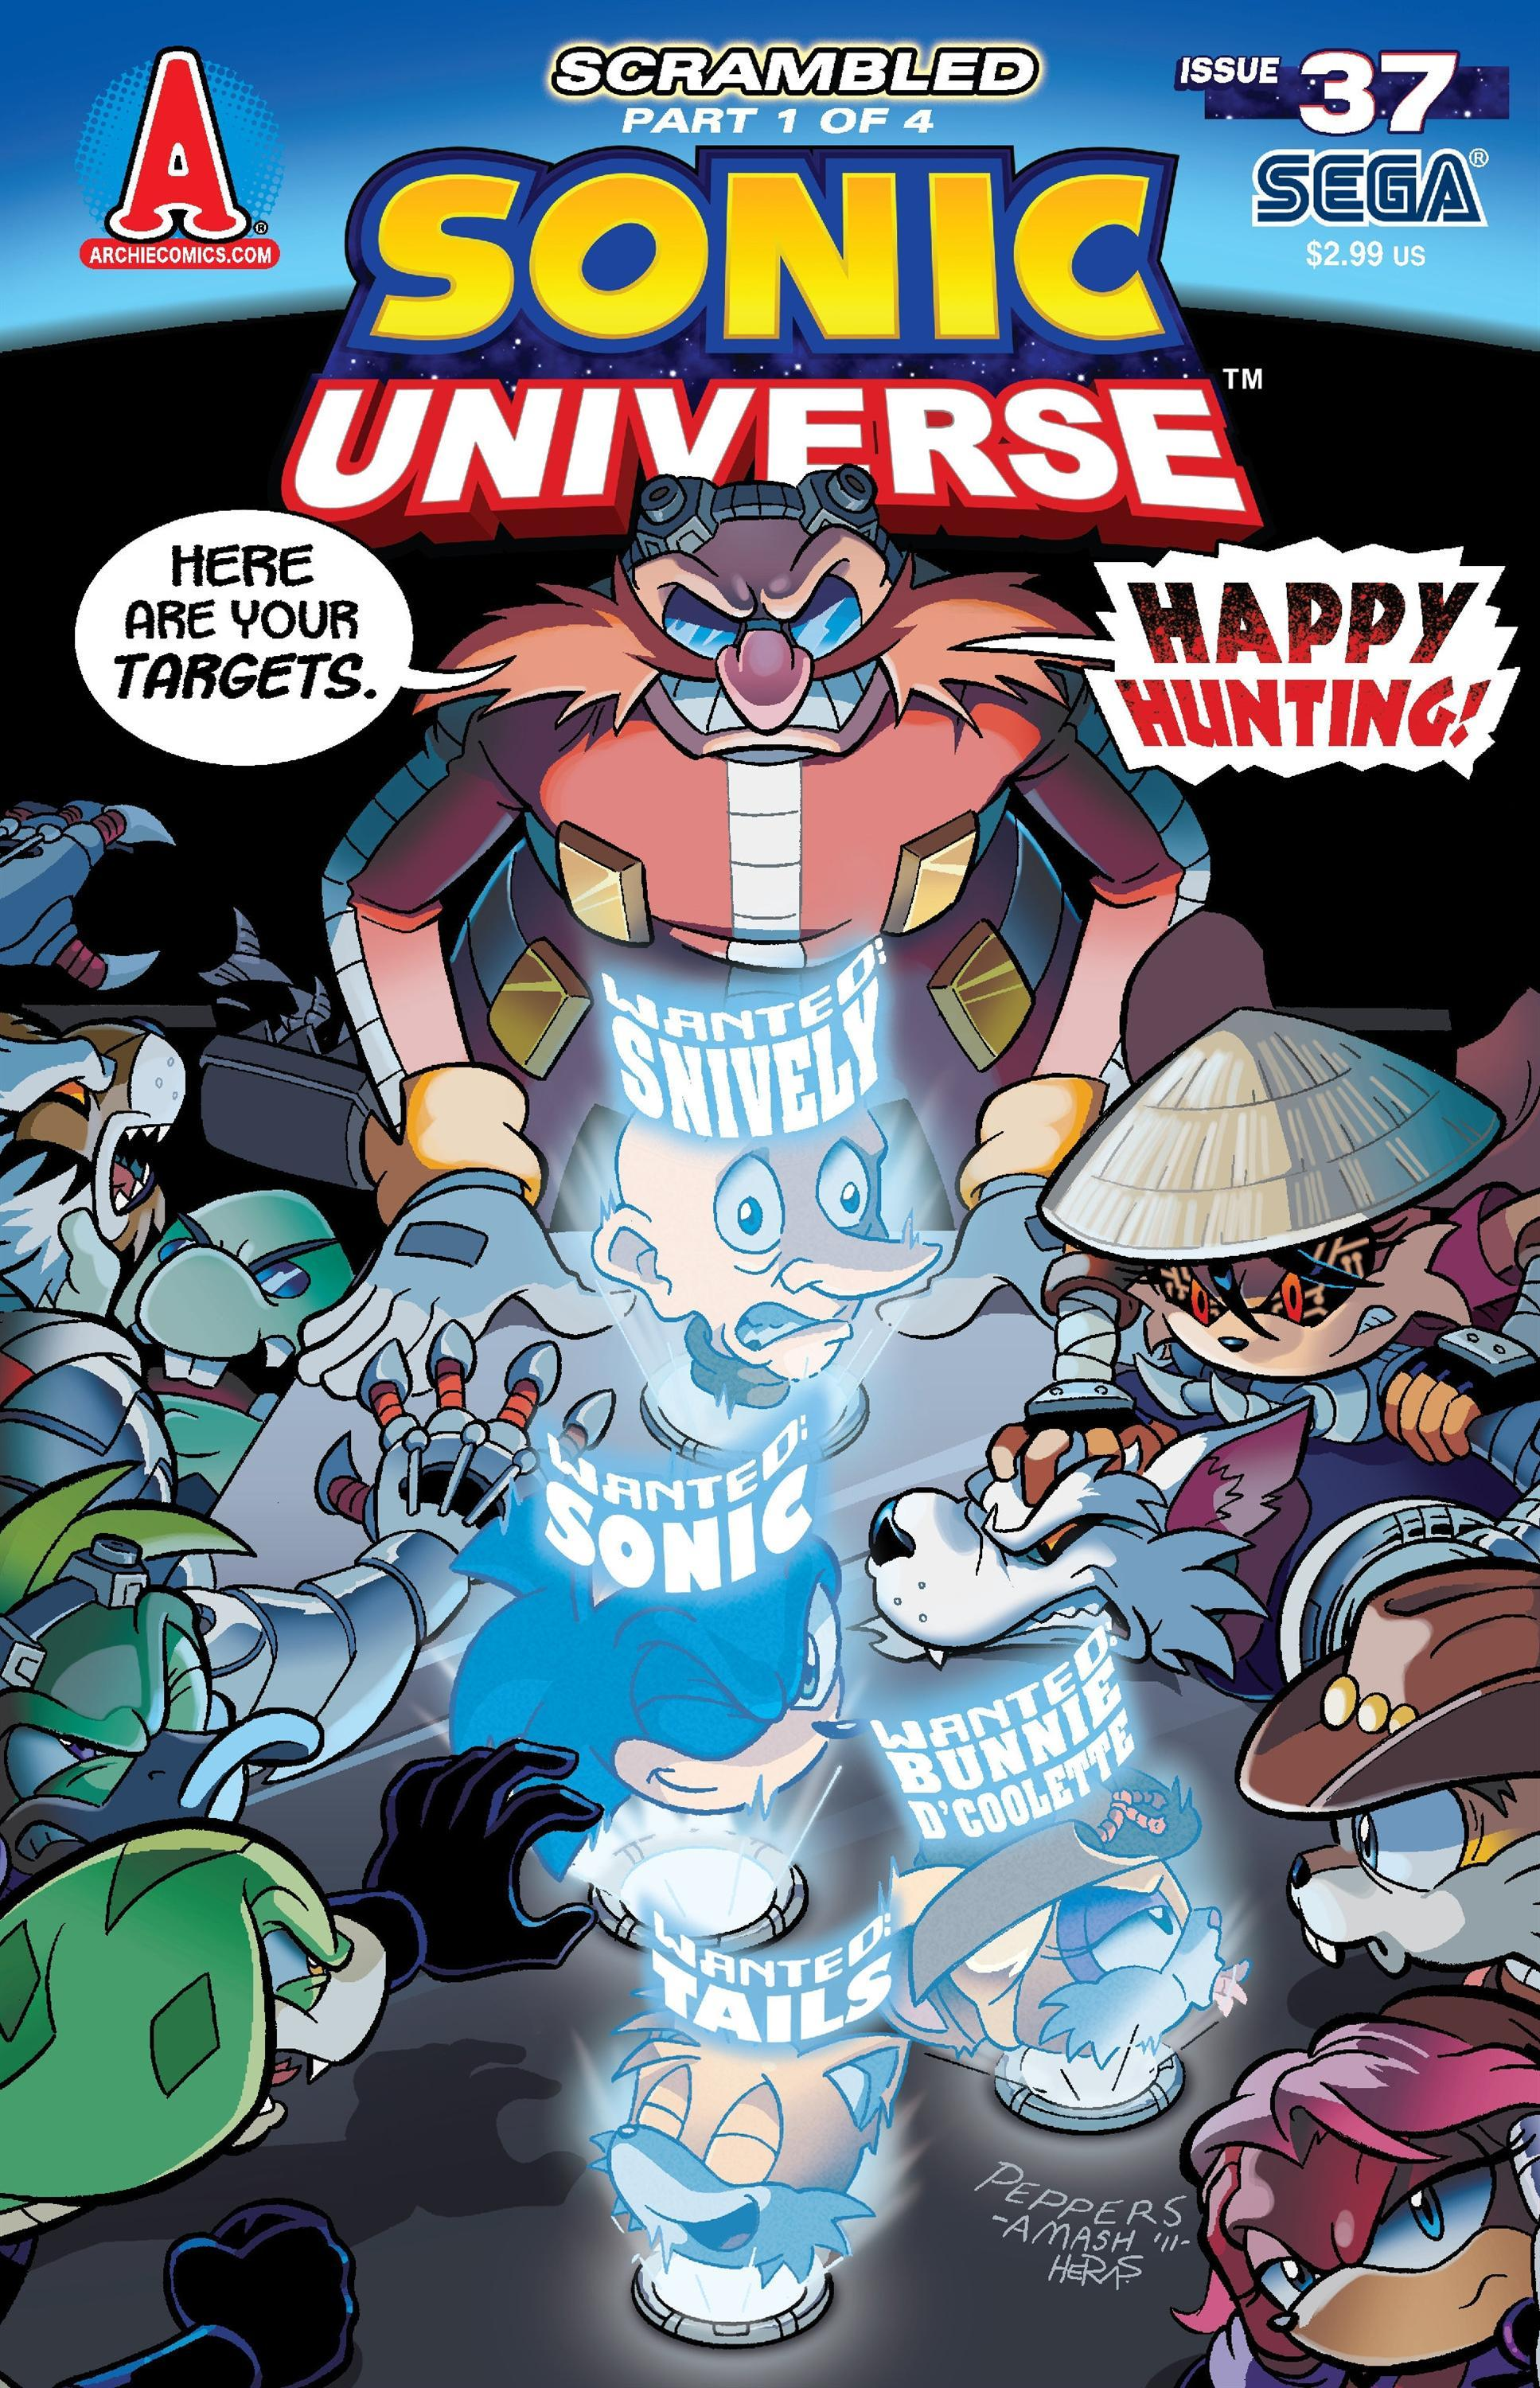 Archie Sonic Universe Issue 37 Sonic News Network